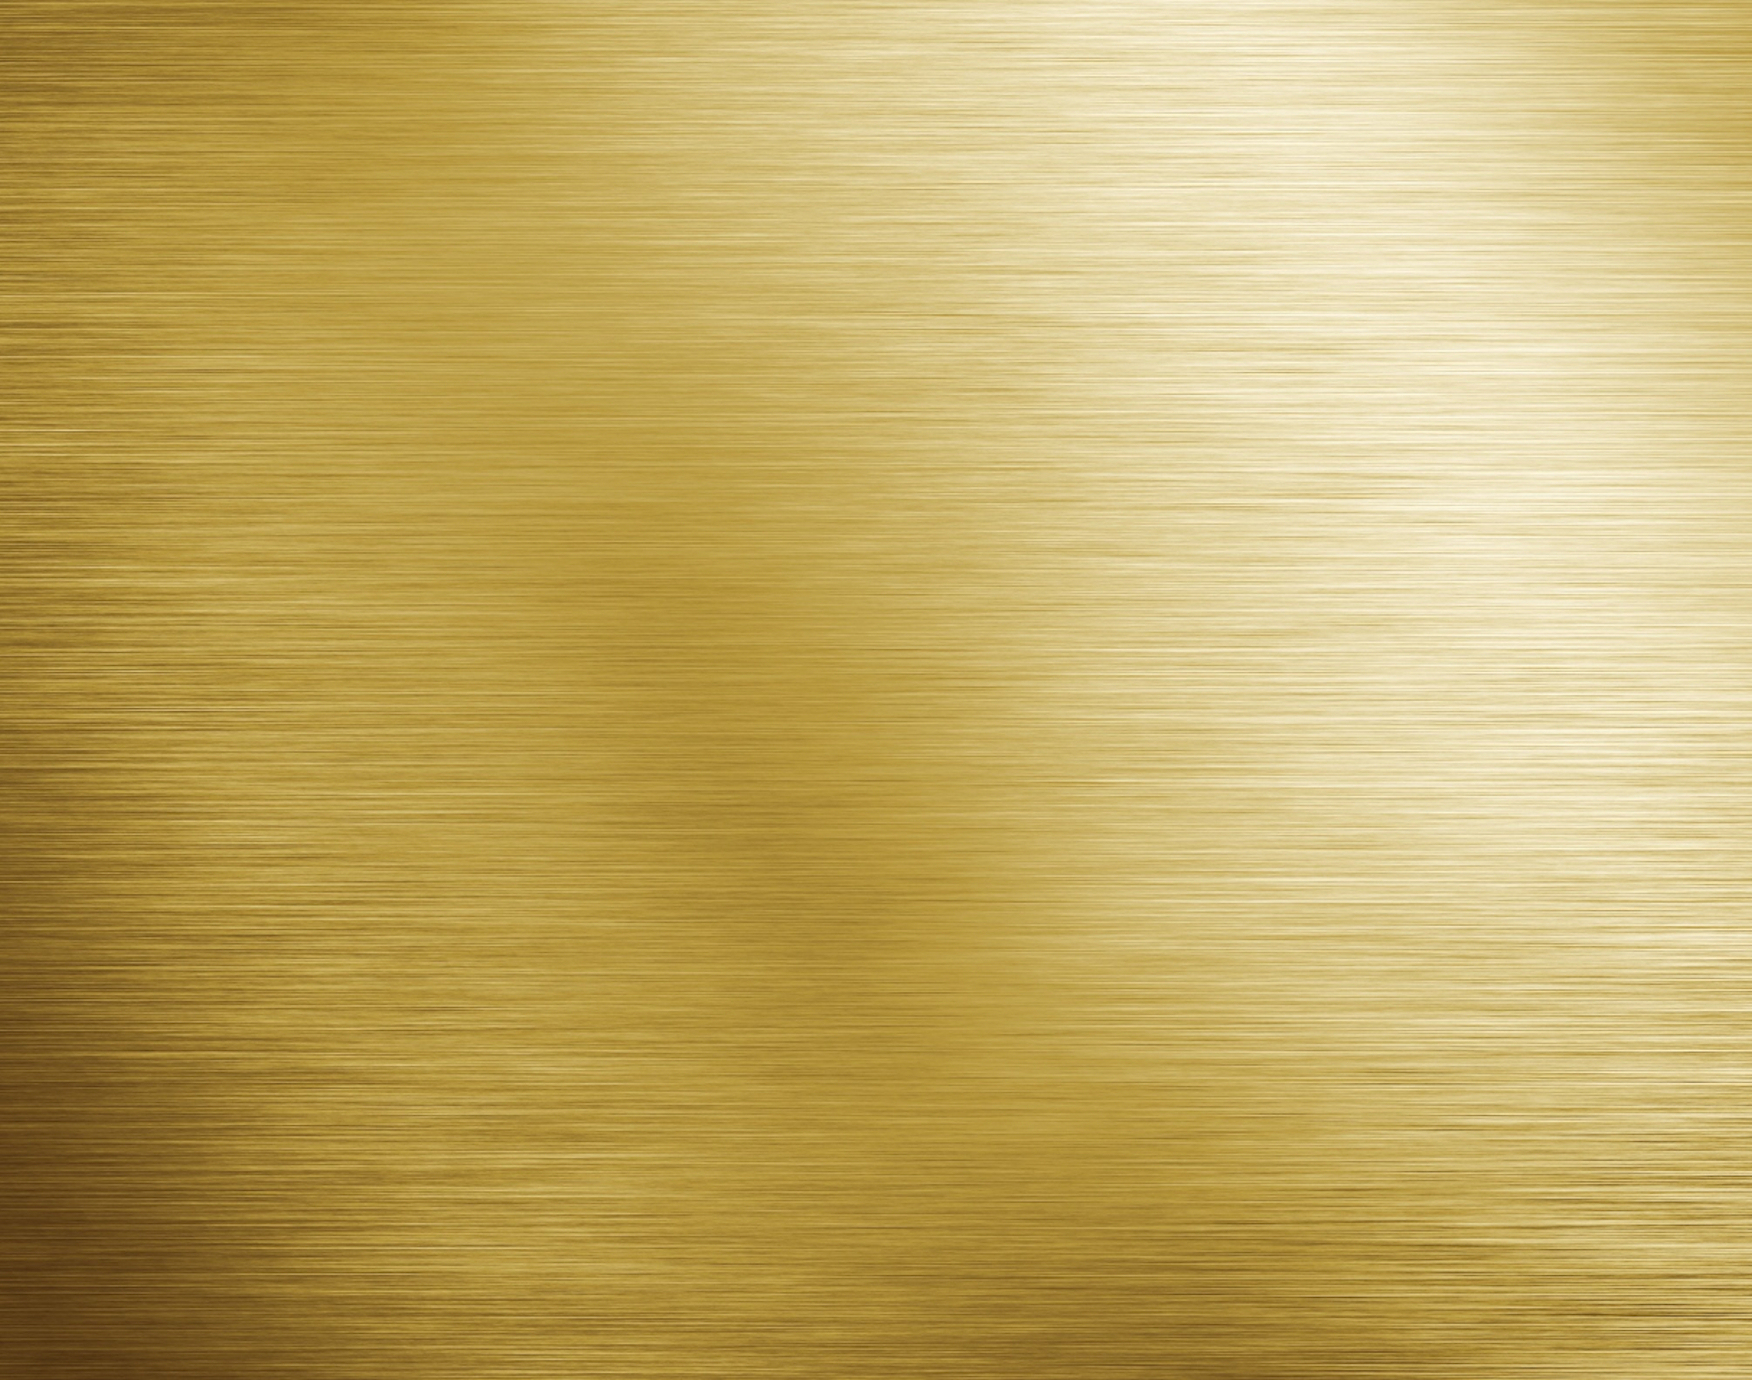 Shiny Gold Background Related Keywords amp Suggestions 1752x1380